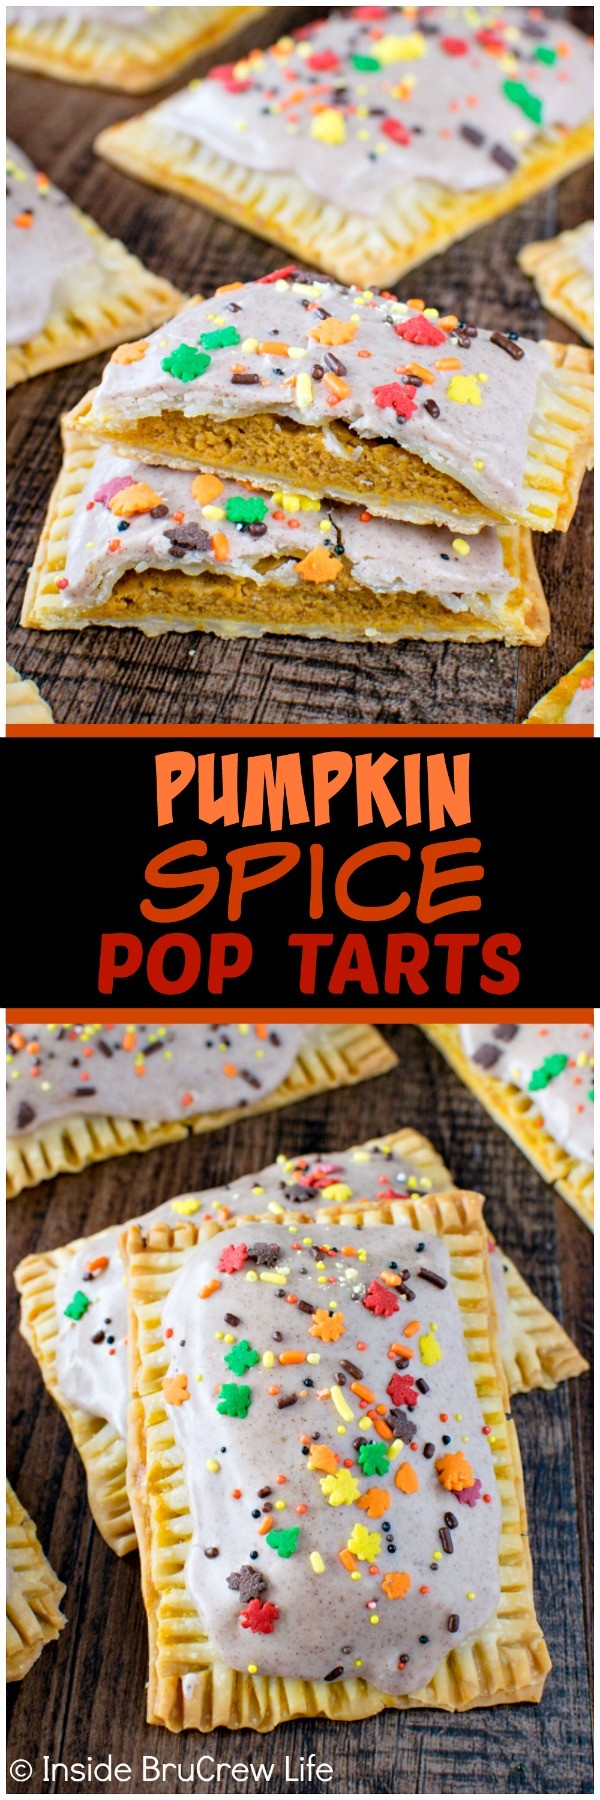 Pumpkin Spice Pop Tarts - use pie crusts to make your own homemade breakfast pastries. These easy tarts are full of pumpkin and spice goodness. Great fall breakfast!